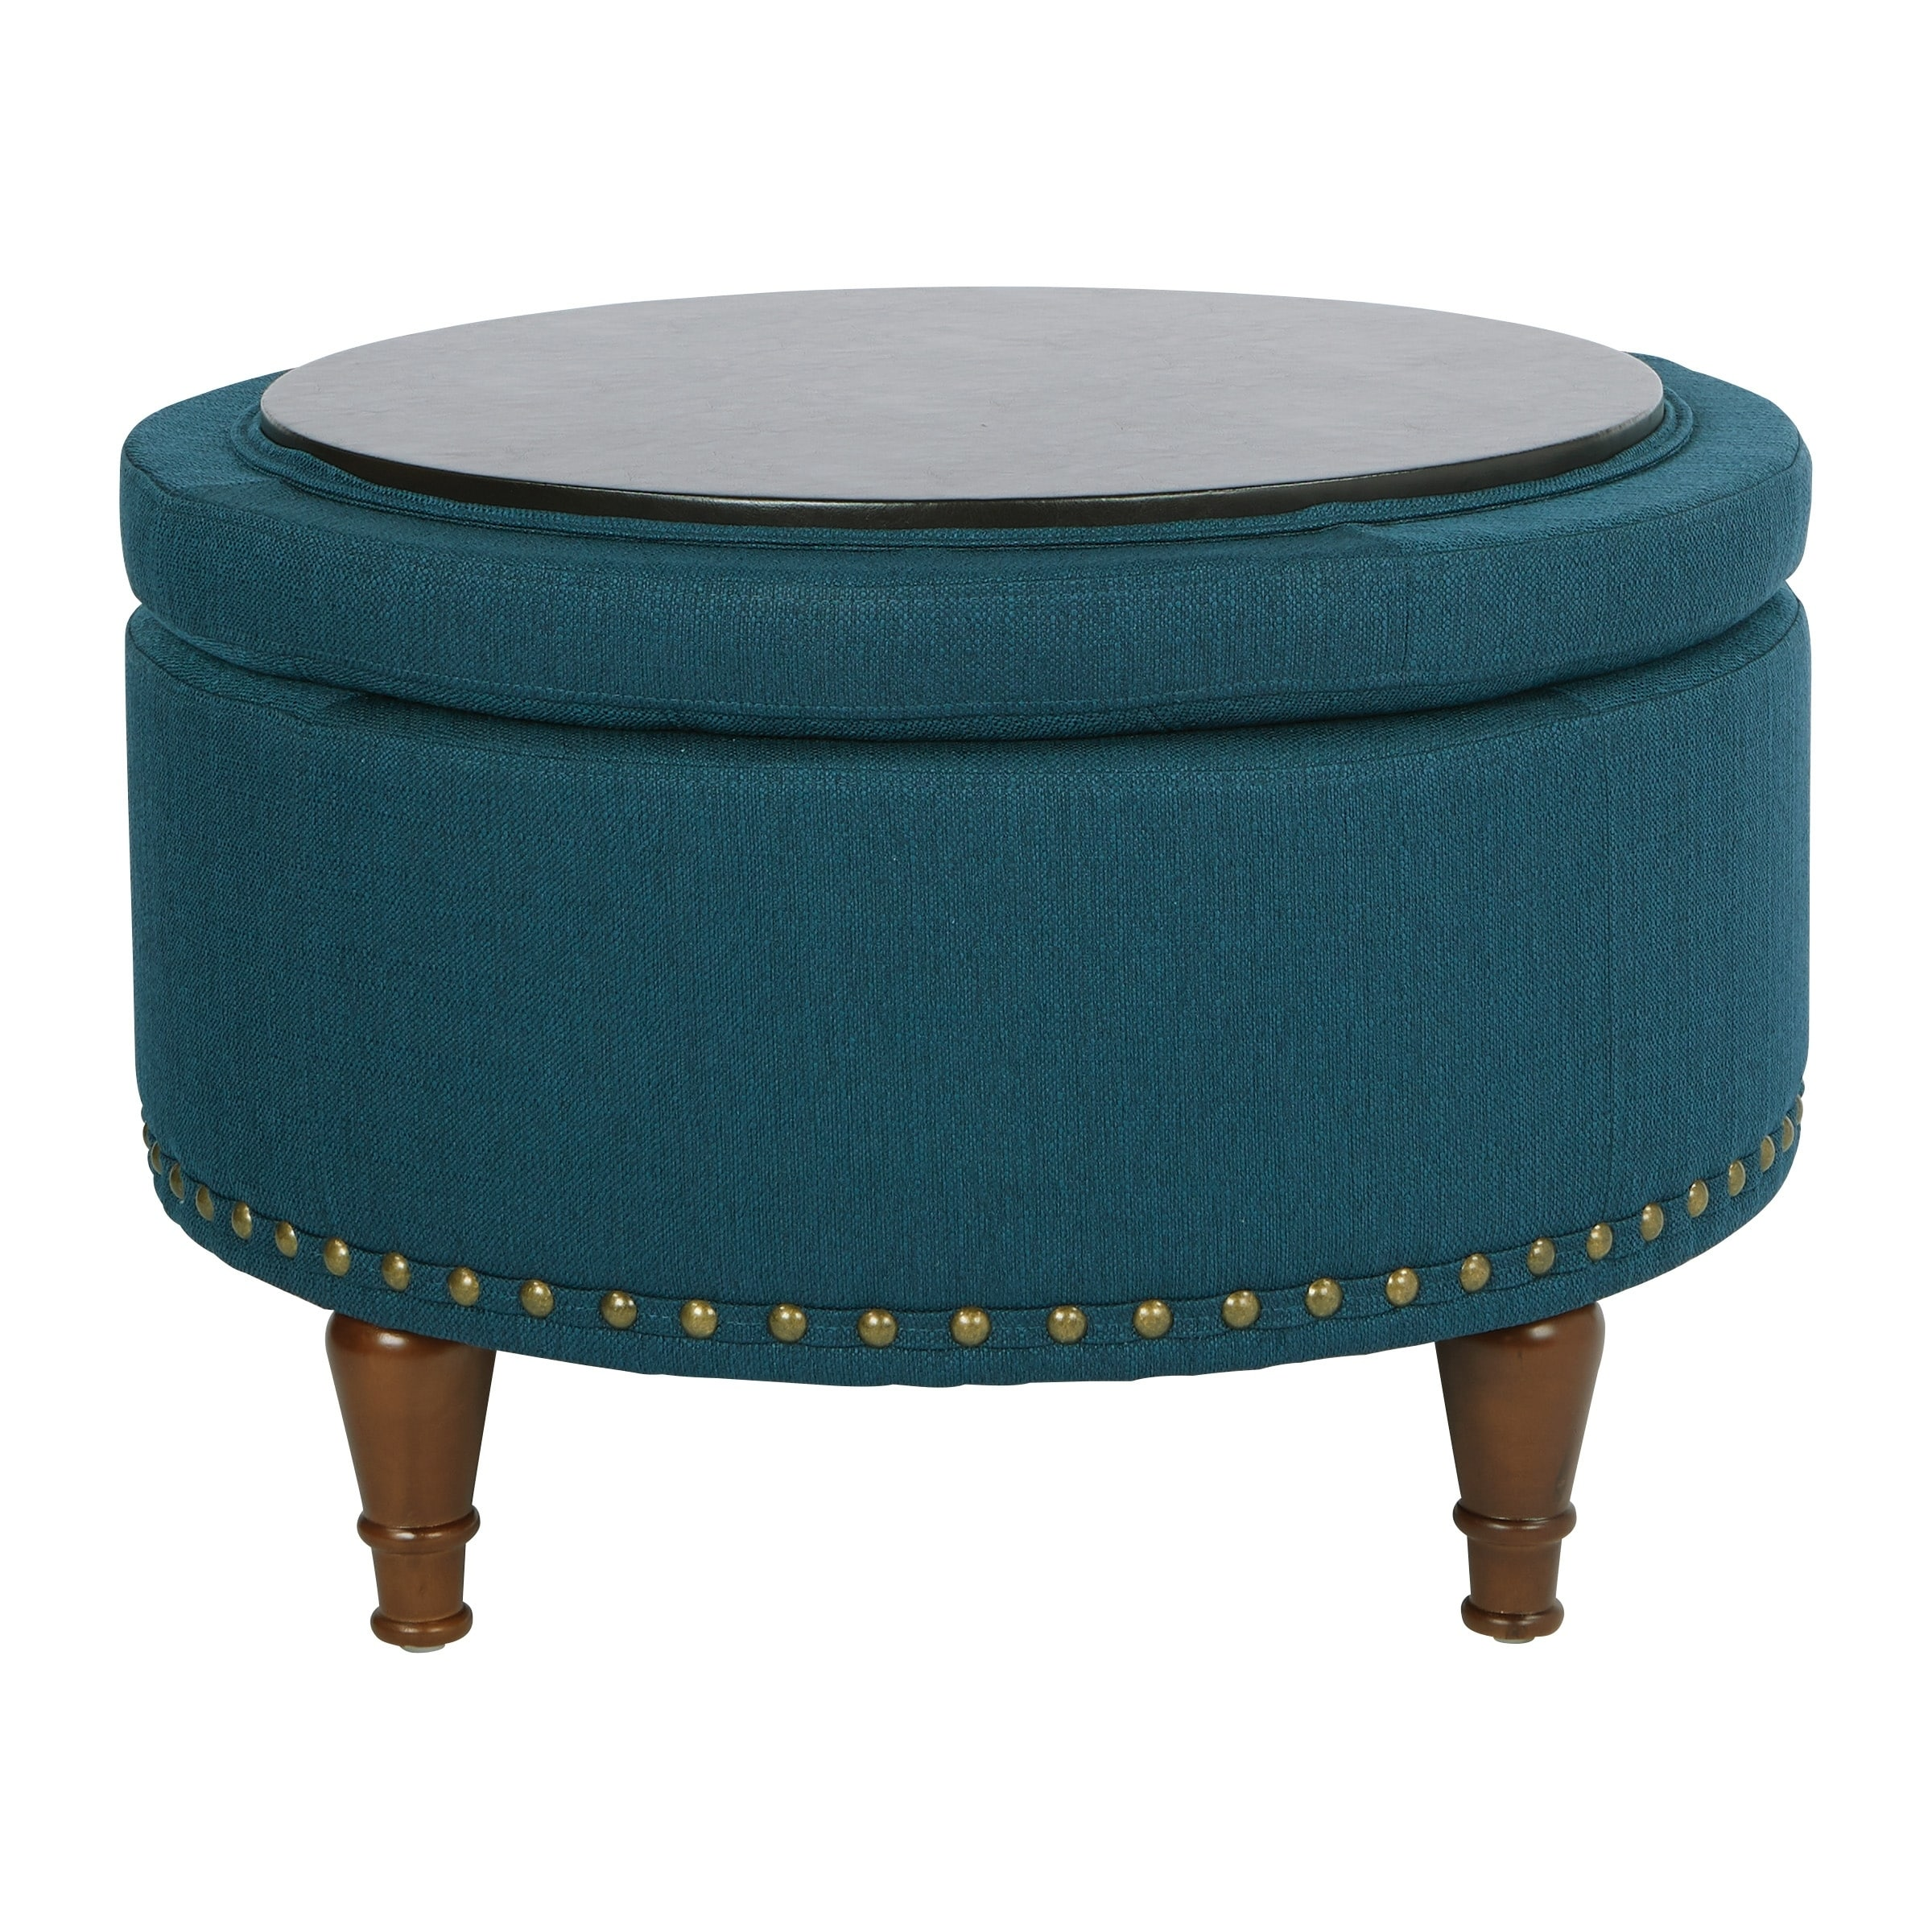 Groovy Osp Home Furnishings Fabric Alloway Storage Ottoman With Bronze Nailheads Theyellowbook Wood Chair Design Ideas Theyellowbookinfo